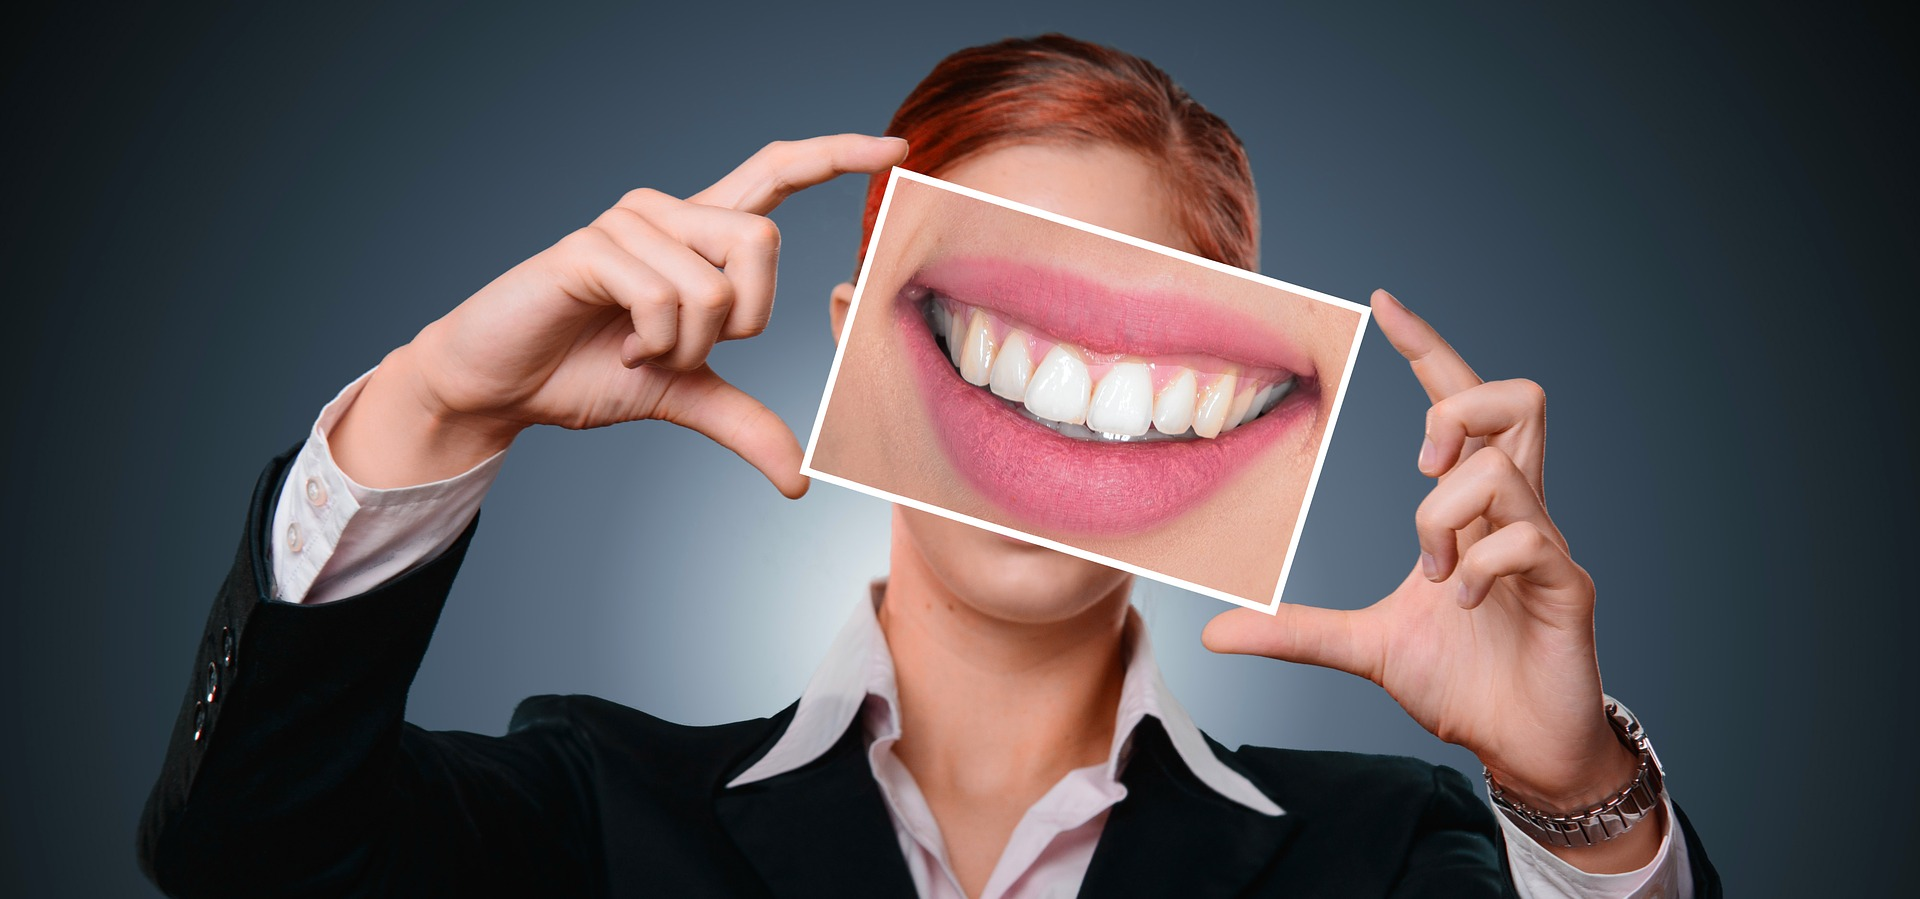 Tooth decay, dental implants